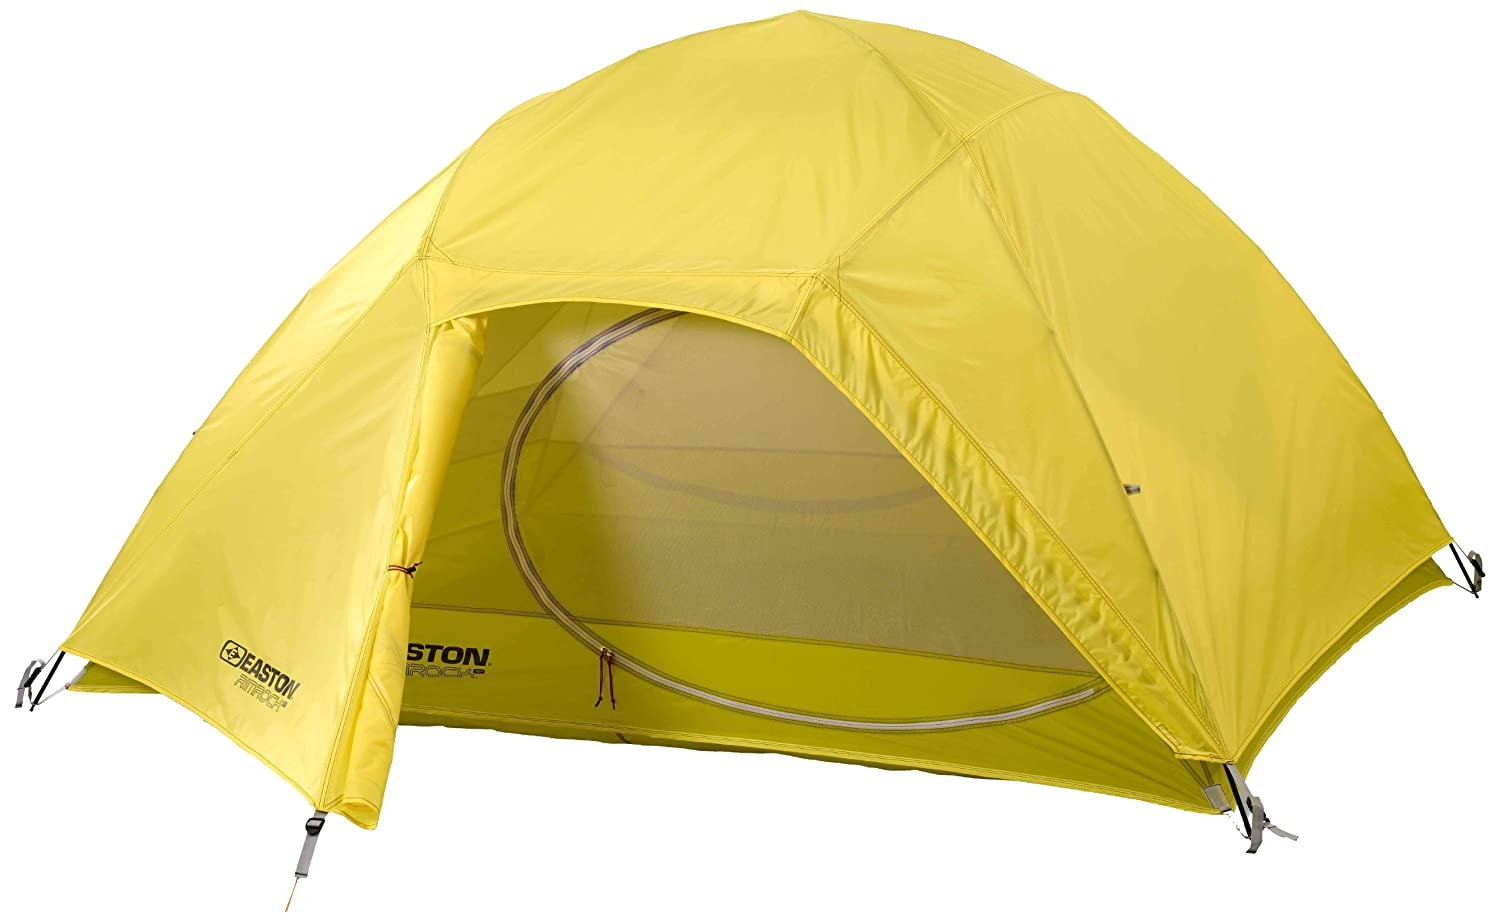 Amazon.com  Easton Mountain Products Rimrock 2-Person Tent for 3 Season  Backpacking Tents  Sports u0026 Outdoors  sc 1 st  Amazon.com : easton tents - memphite.com